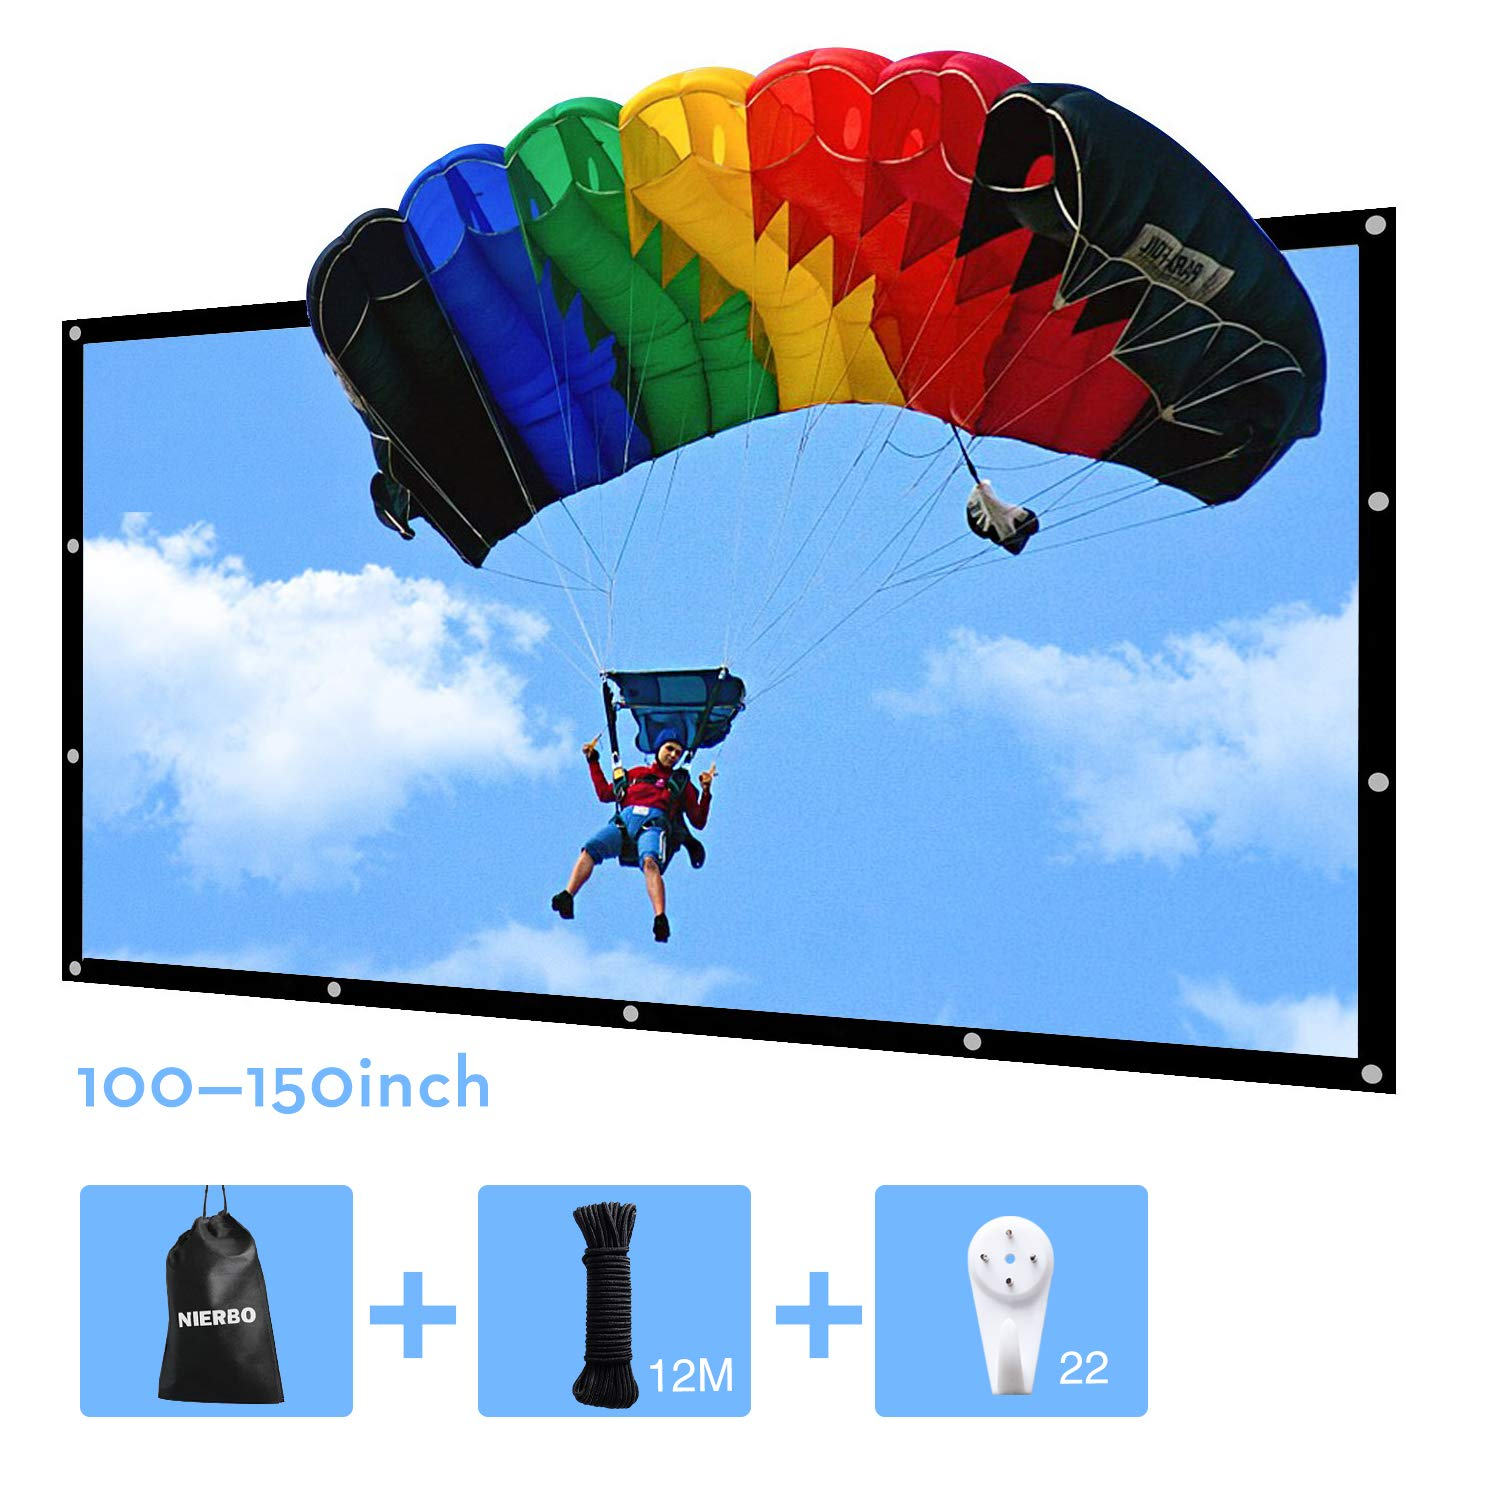 150 inch Portable Projector Screen Outdoor Movie Screen for Projection Double Sided for Home Theater No Wrinkles with 22 Traceless Nails and One Rope